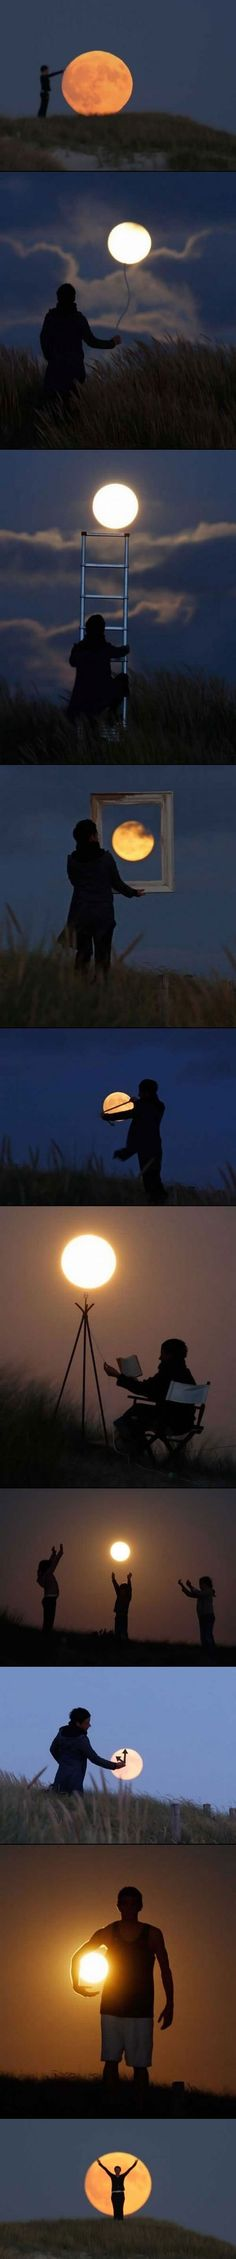 Playing with the moon.